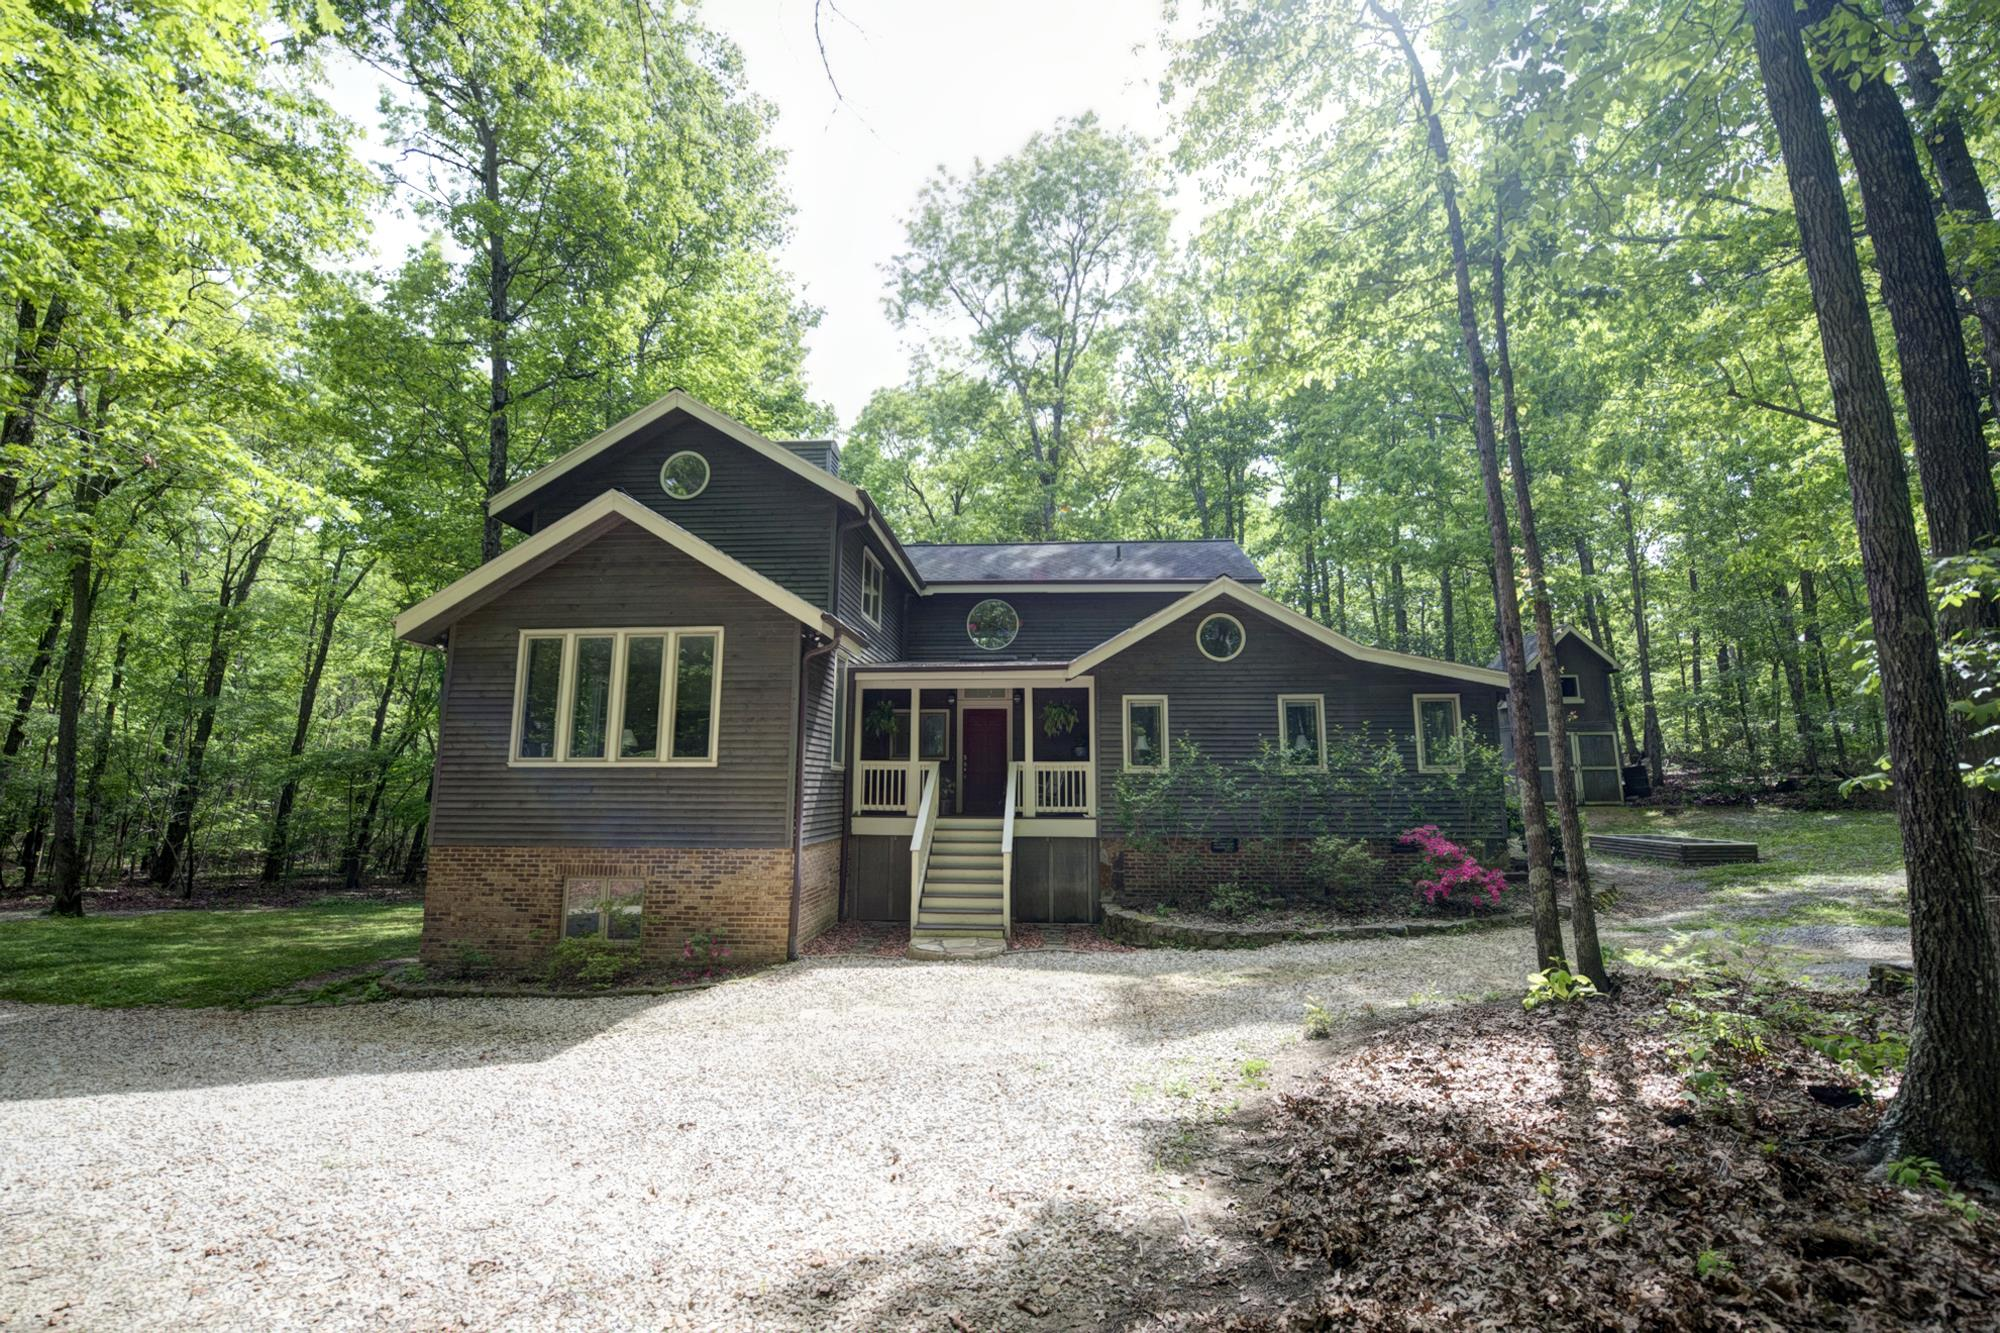 727 Deepwoods Road, Sewanee, TN 37375 - Sewanee, TN real estate listing